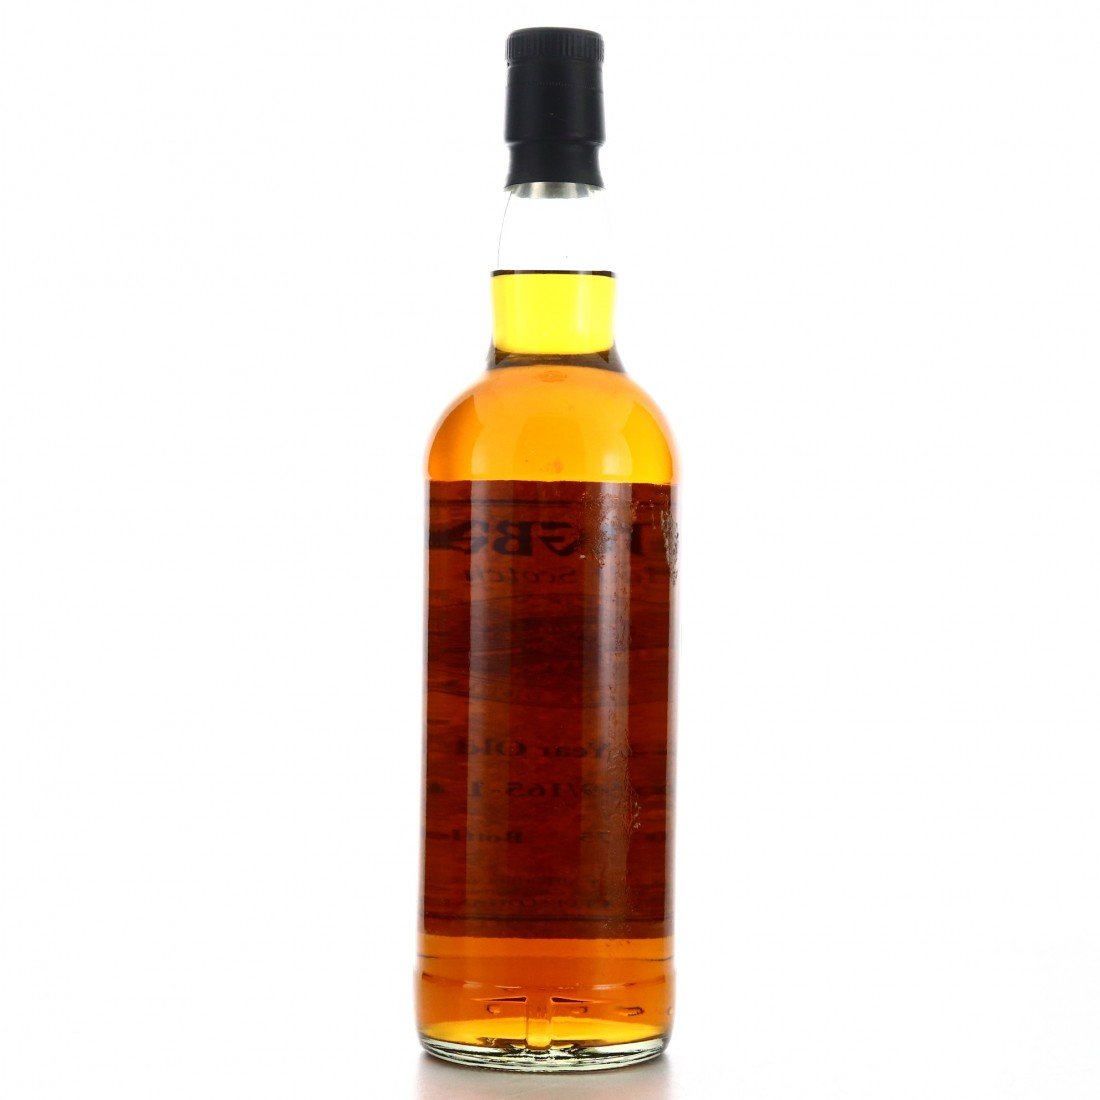 Springbank 1975 Private Cask 34 Year Old